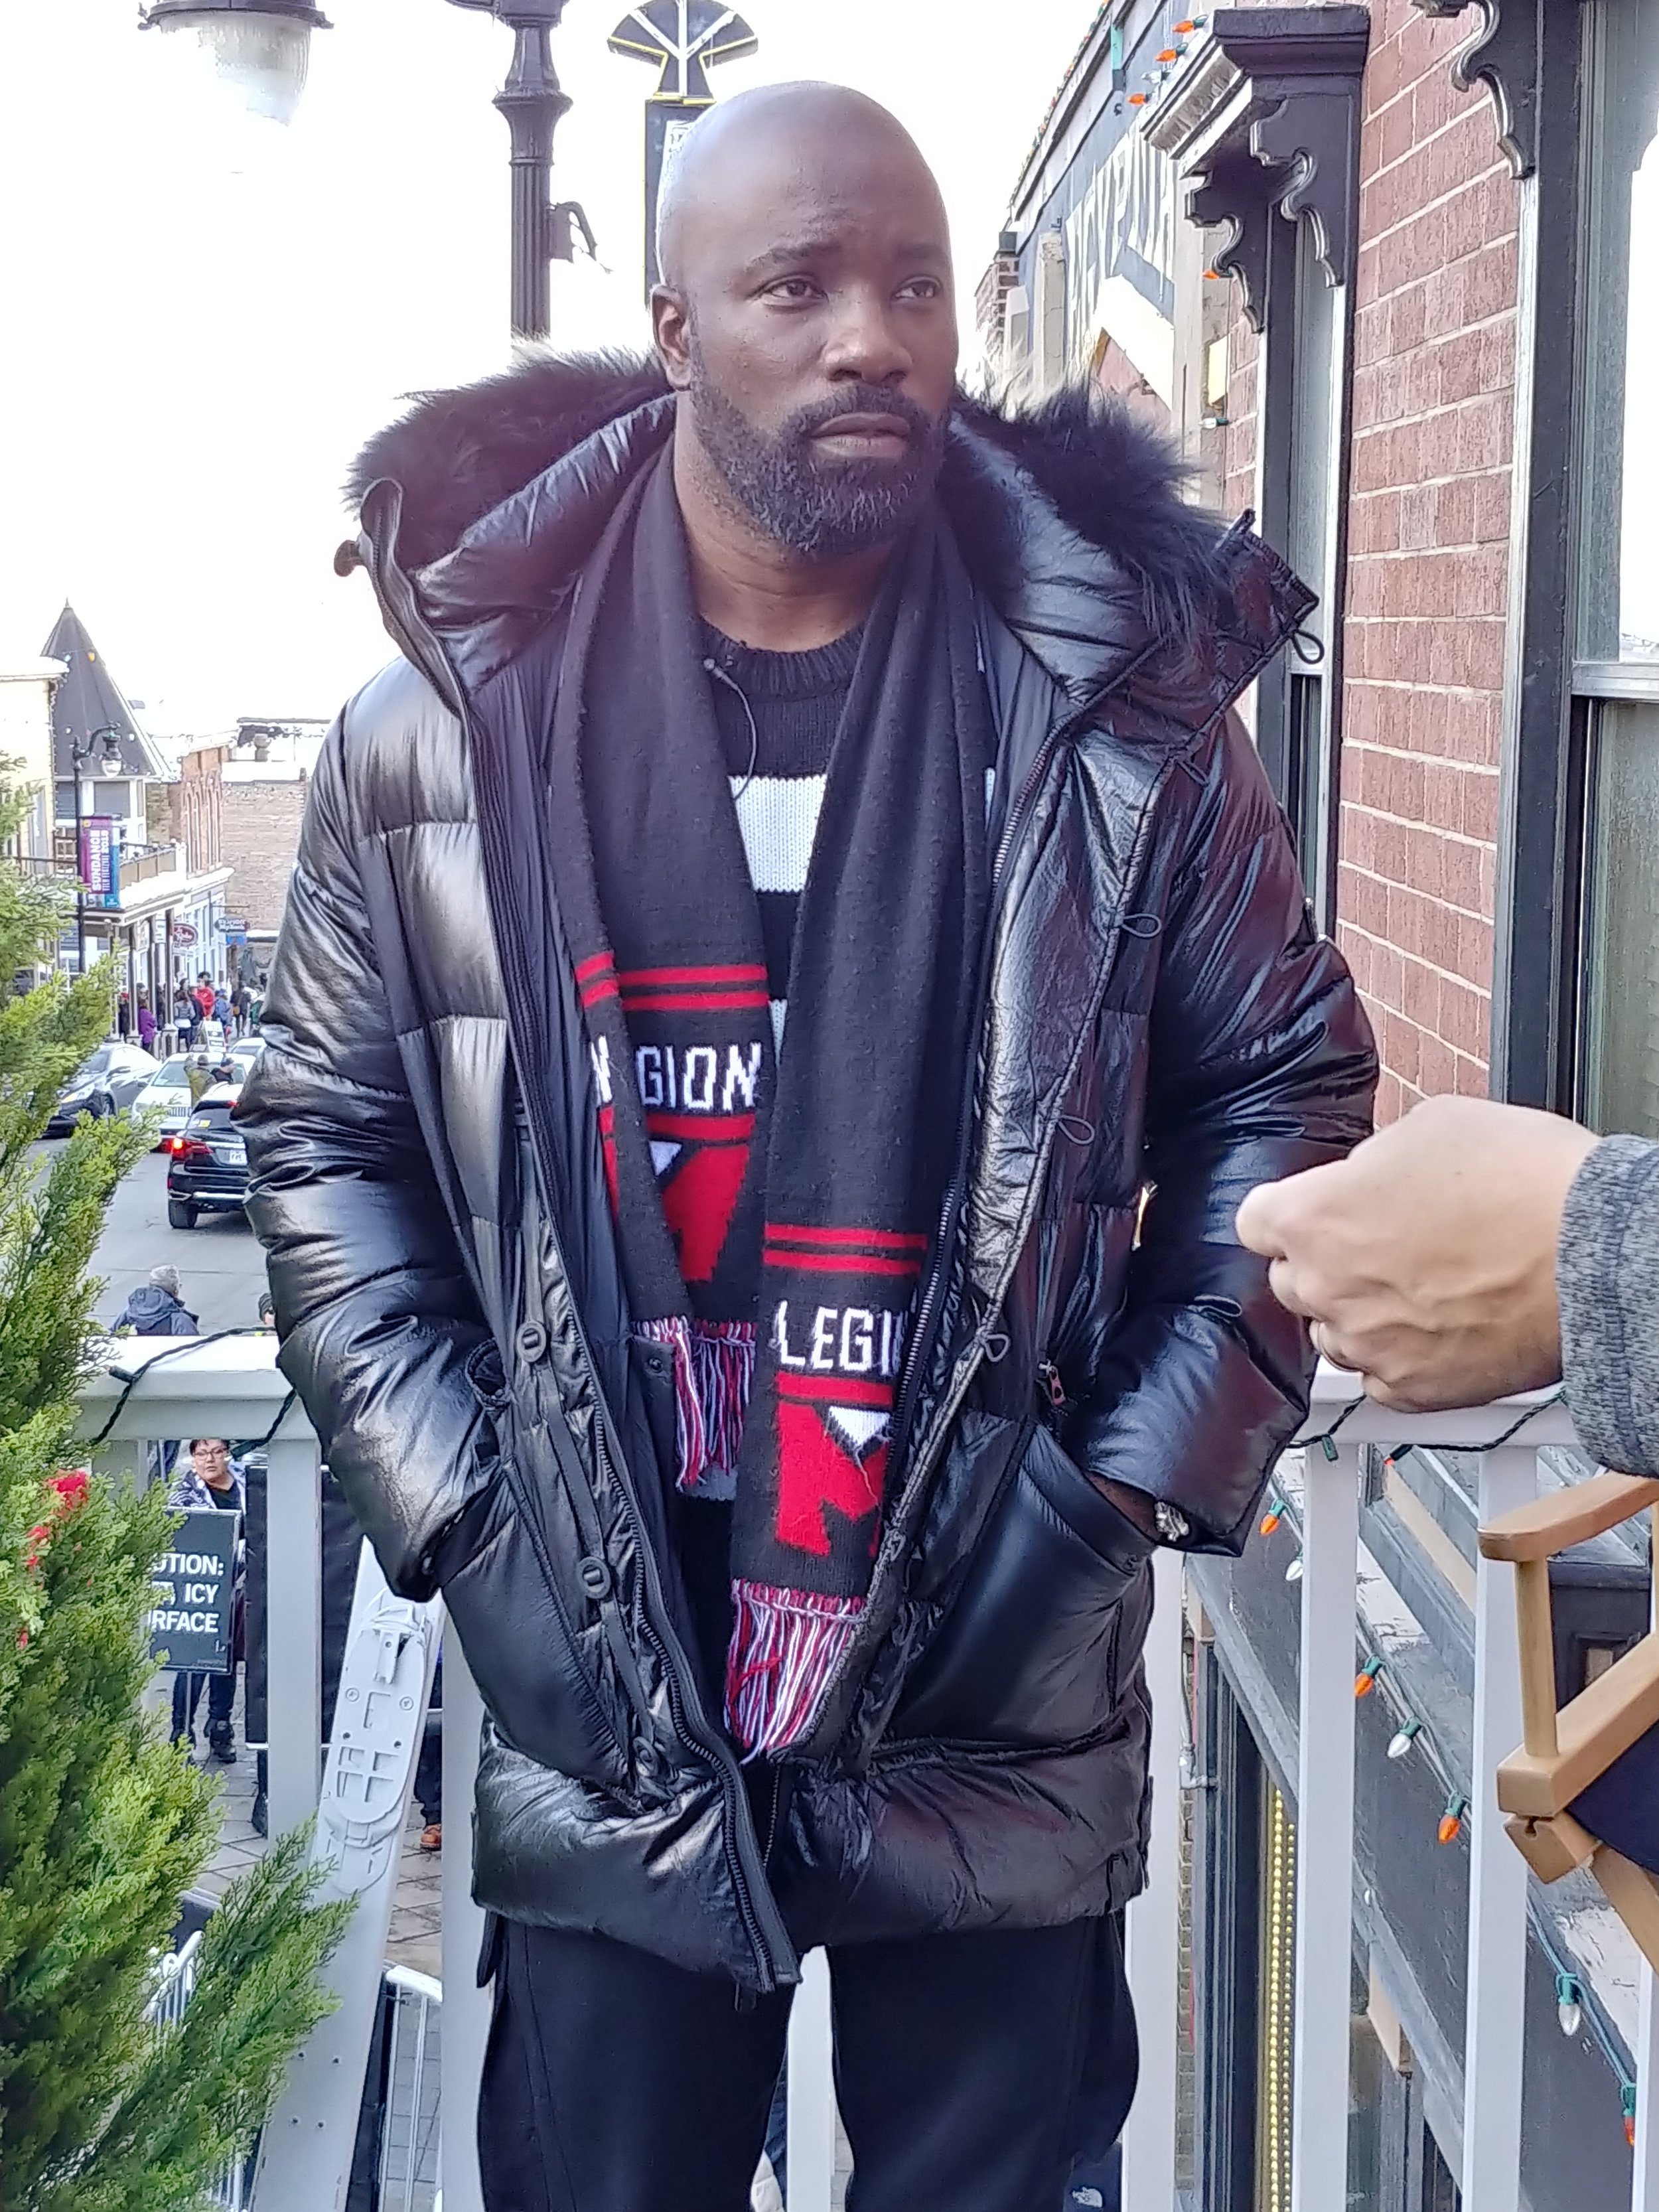 Even Luke Cage (Mike Colter) himself came by the lounge!